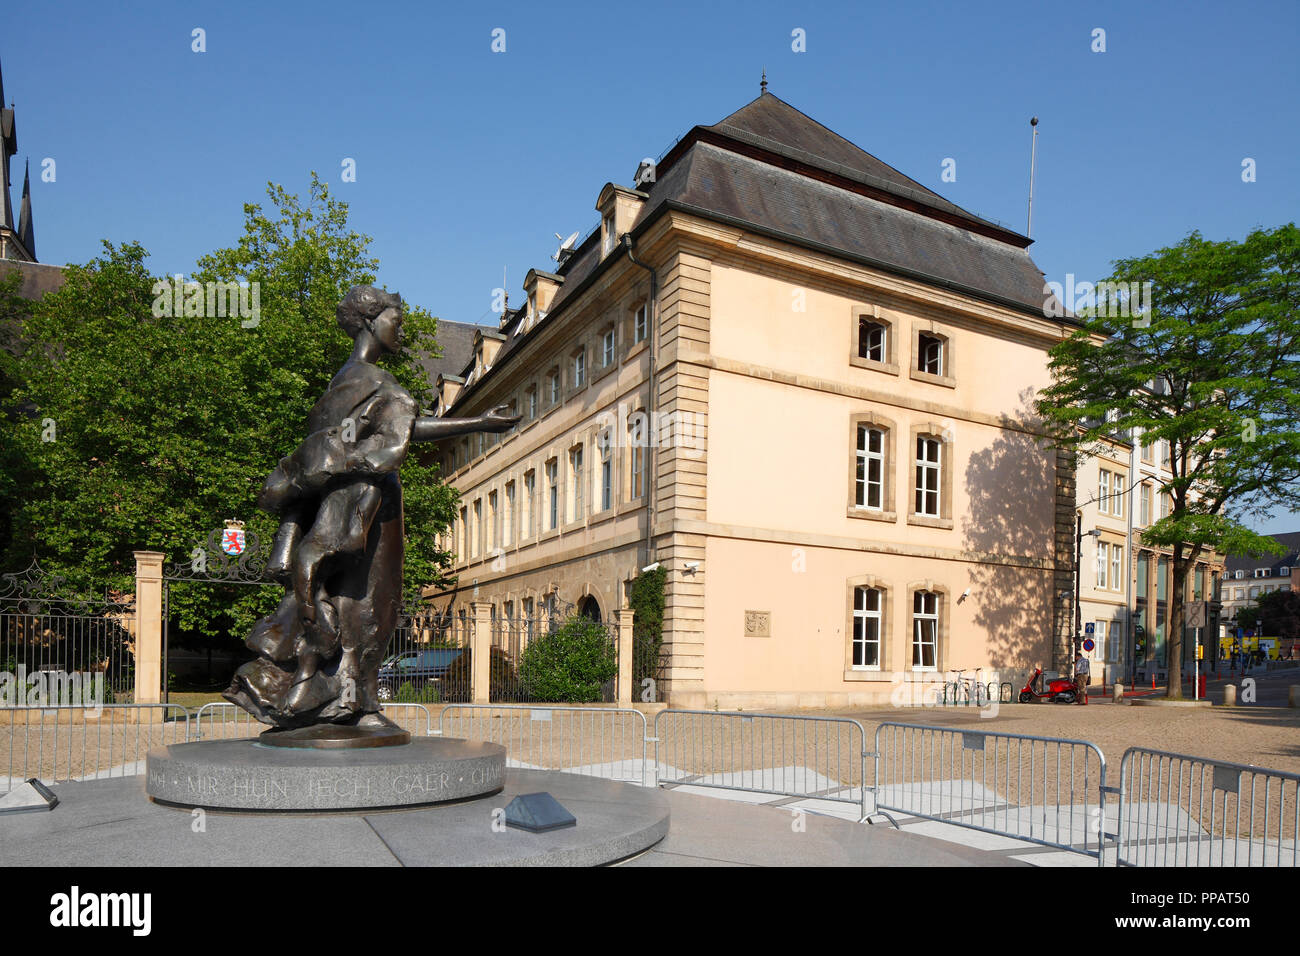 Großherzogin Charlotte Denkmal am Clairefontaine, Luxembourg City, Luxemburg, Europa ich Großherzogin Charlotte Denkmal bin Clairefontaine-Plat Stockfoto